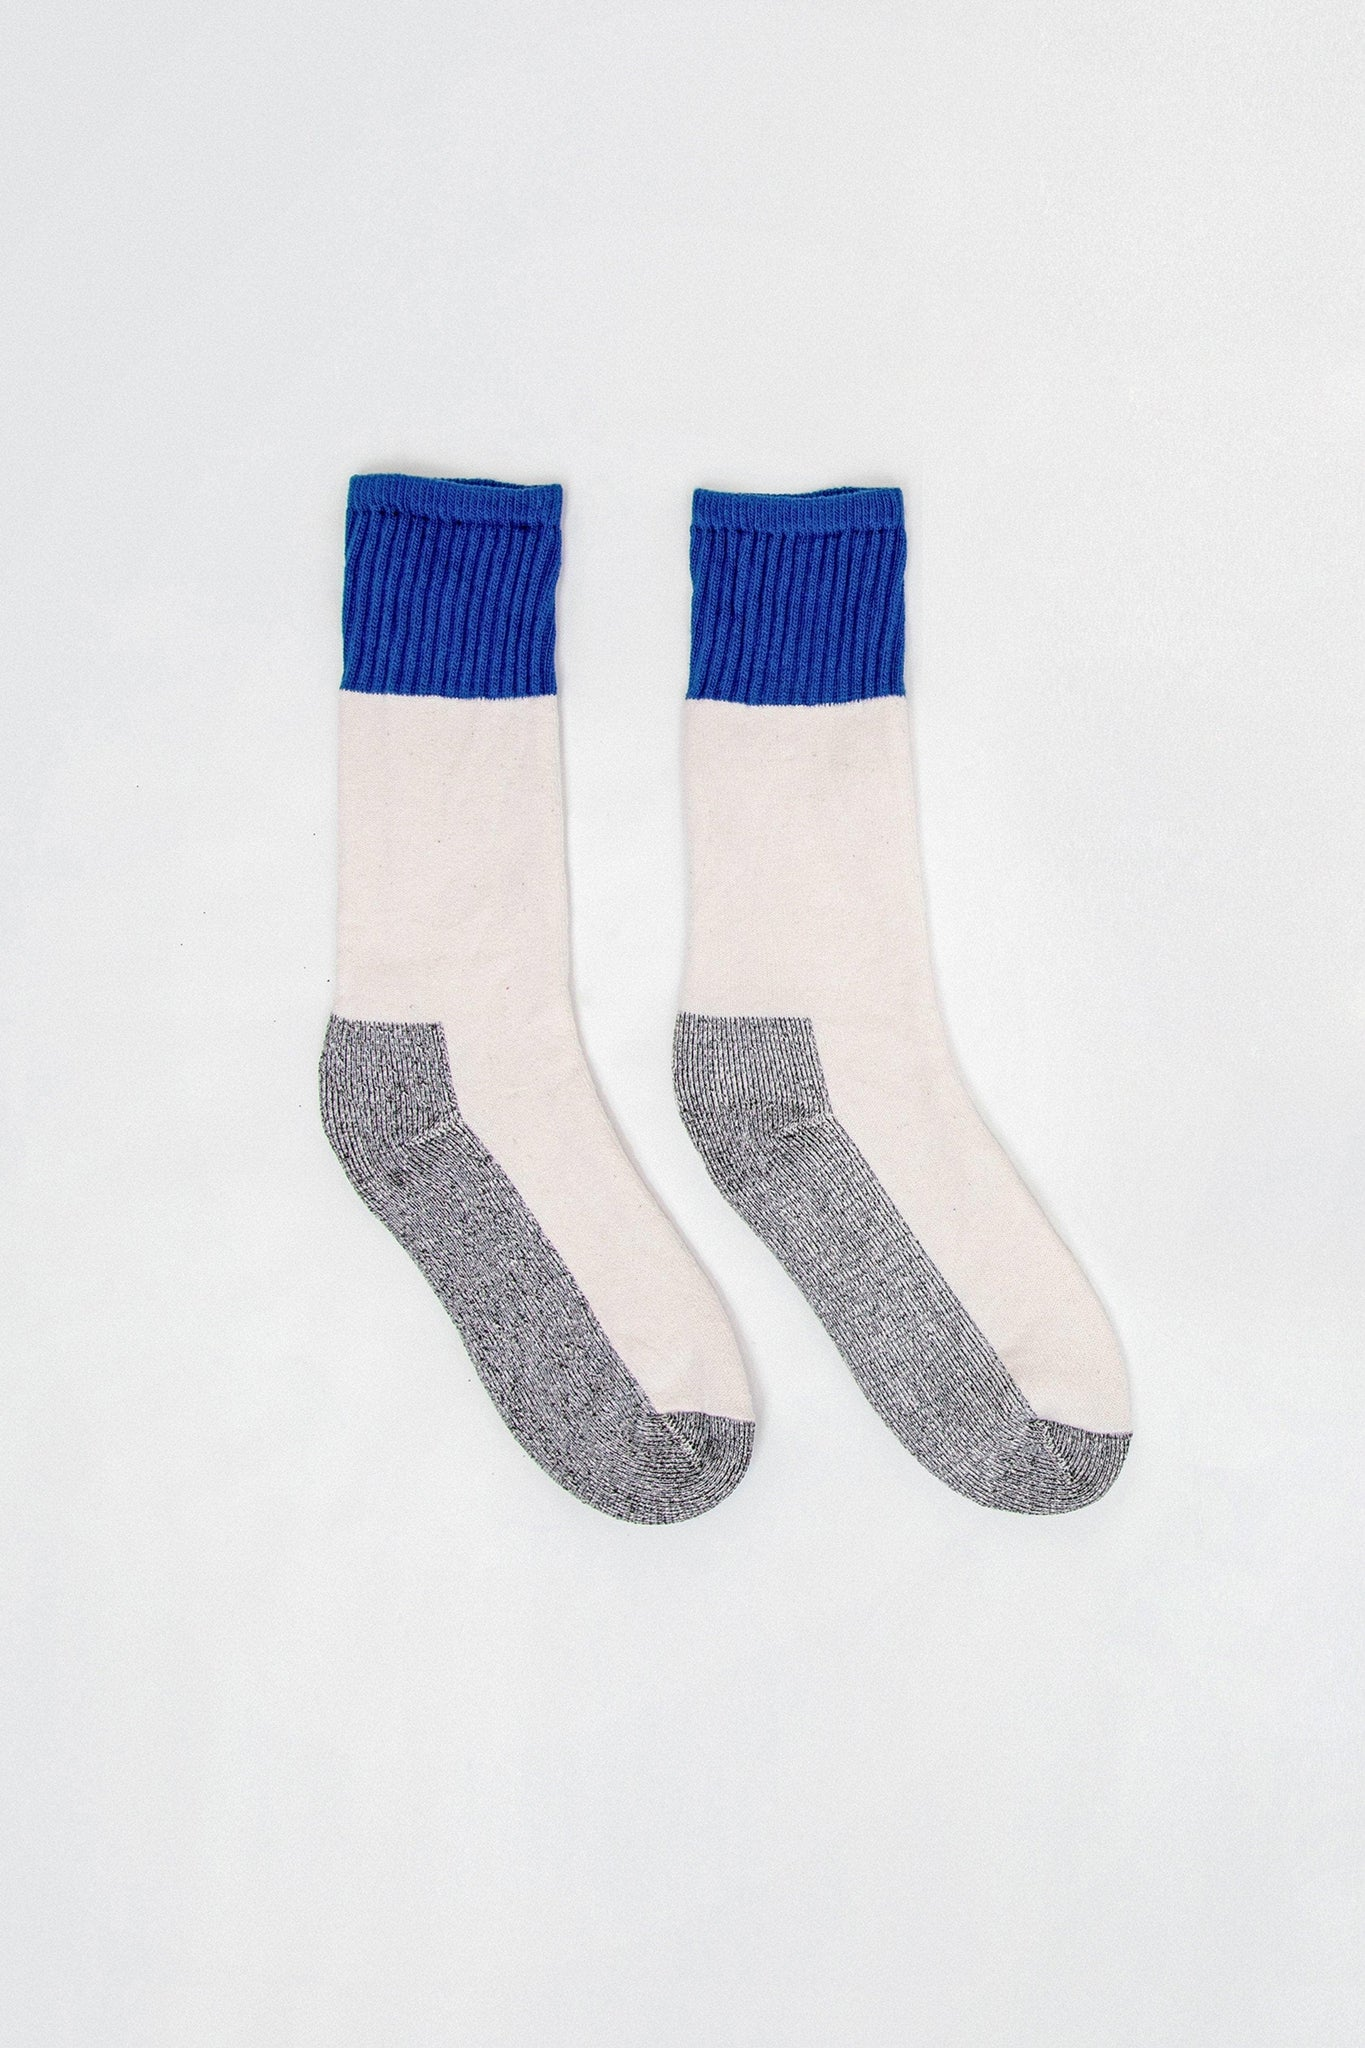 CBLKSOCK - Color Block Boot Sock